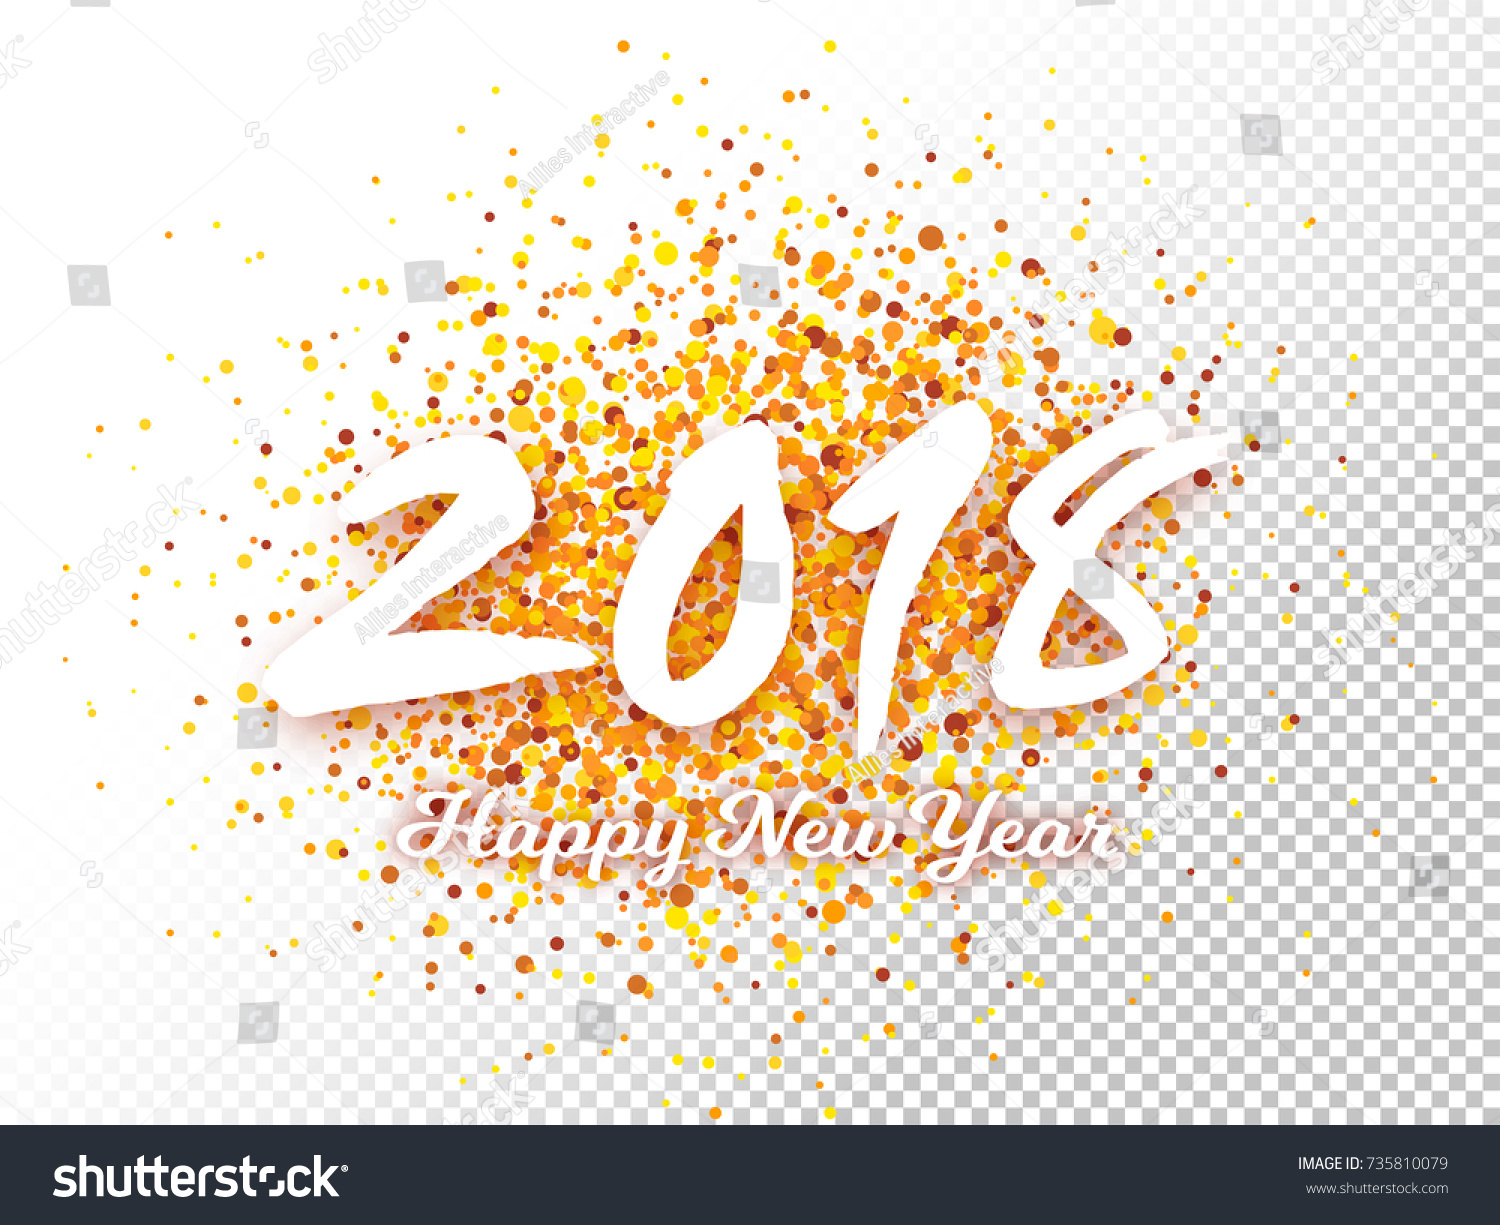 2018 text on transparent background for happy new year